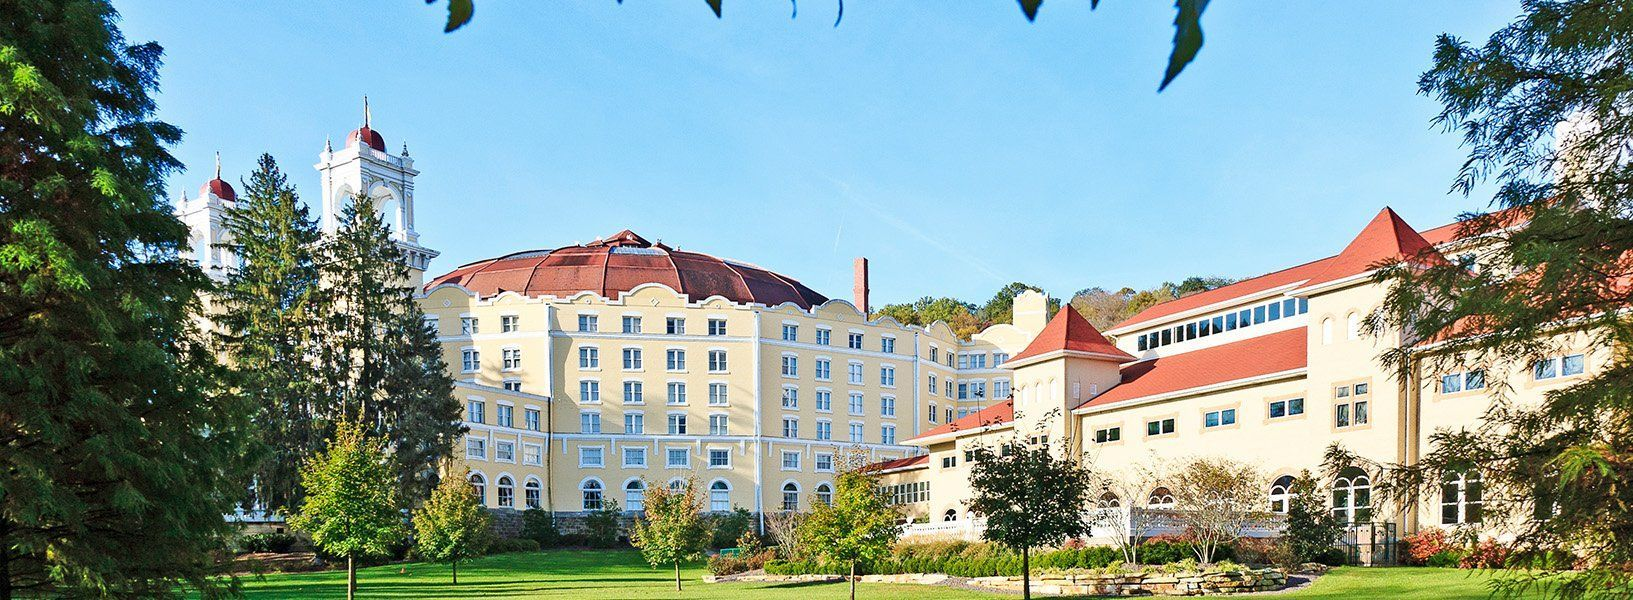 Ruby reccomend French lick resort half price